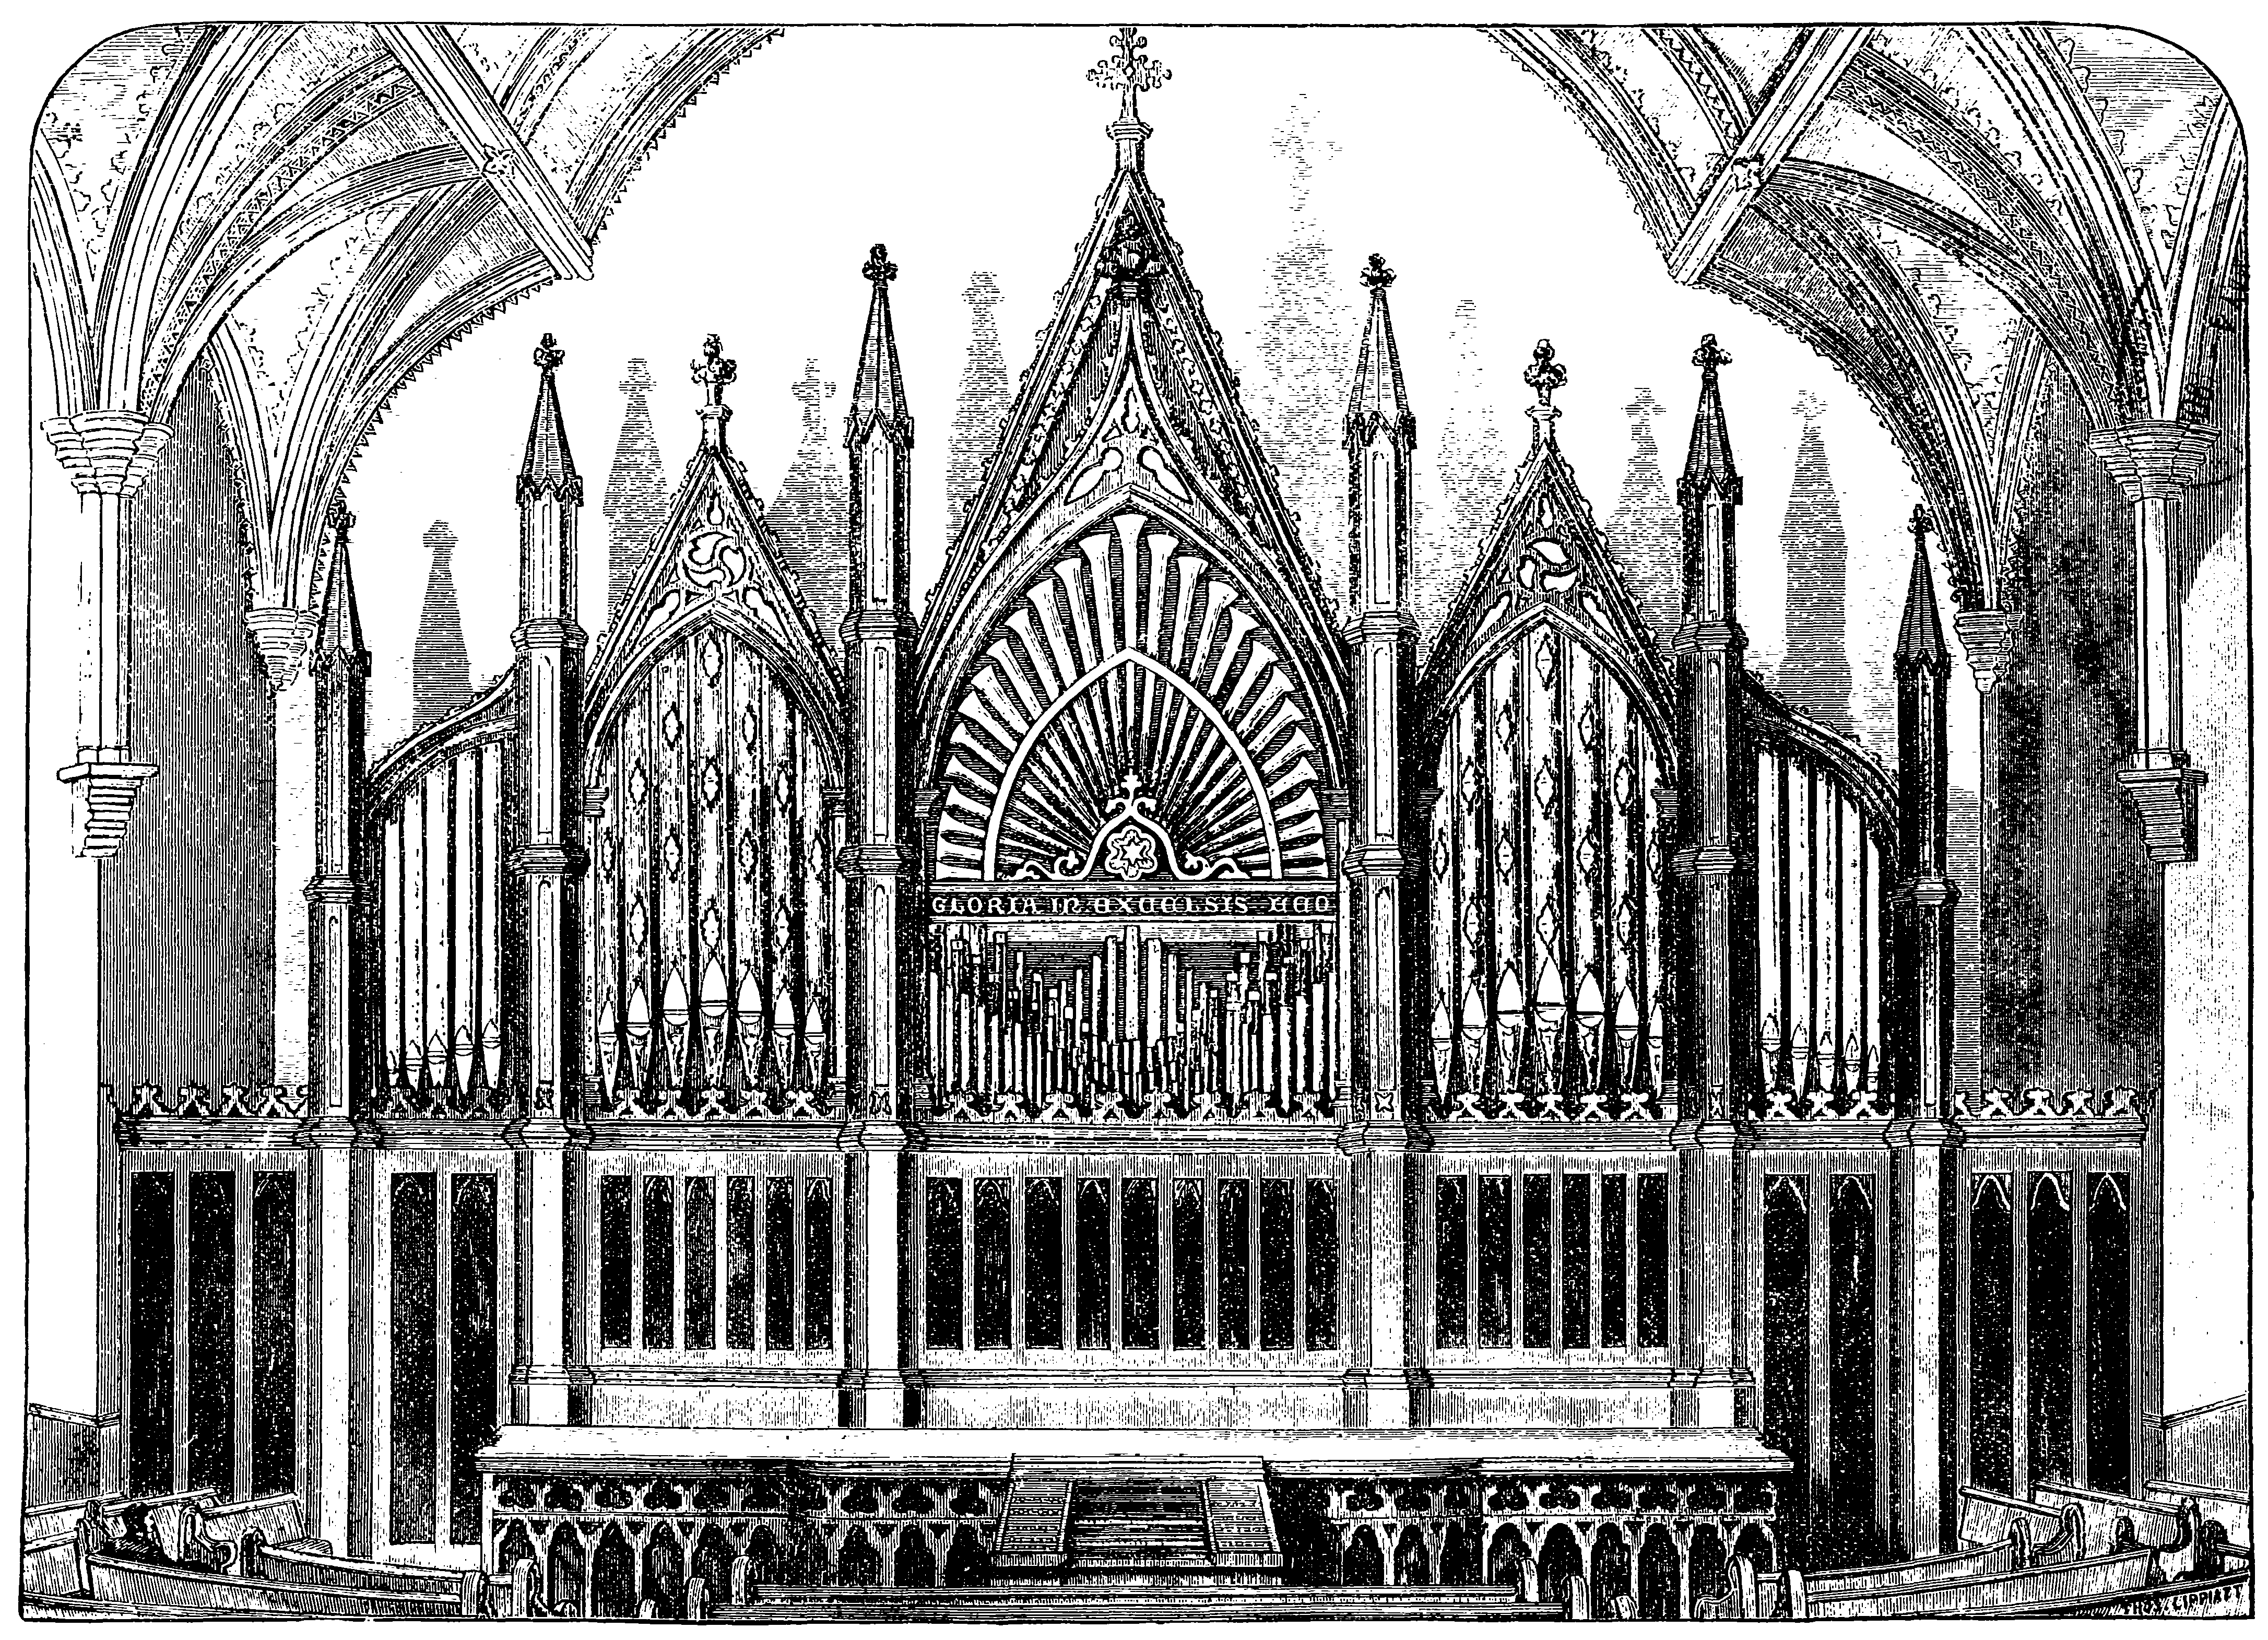 Jardine Organ from 1873 in the Brooklyn Temple, burned in 1889